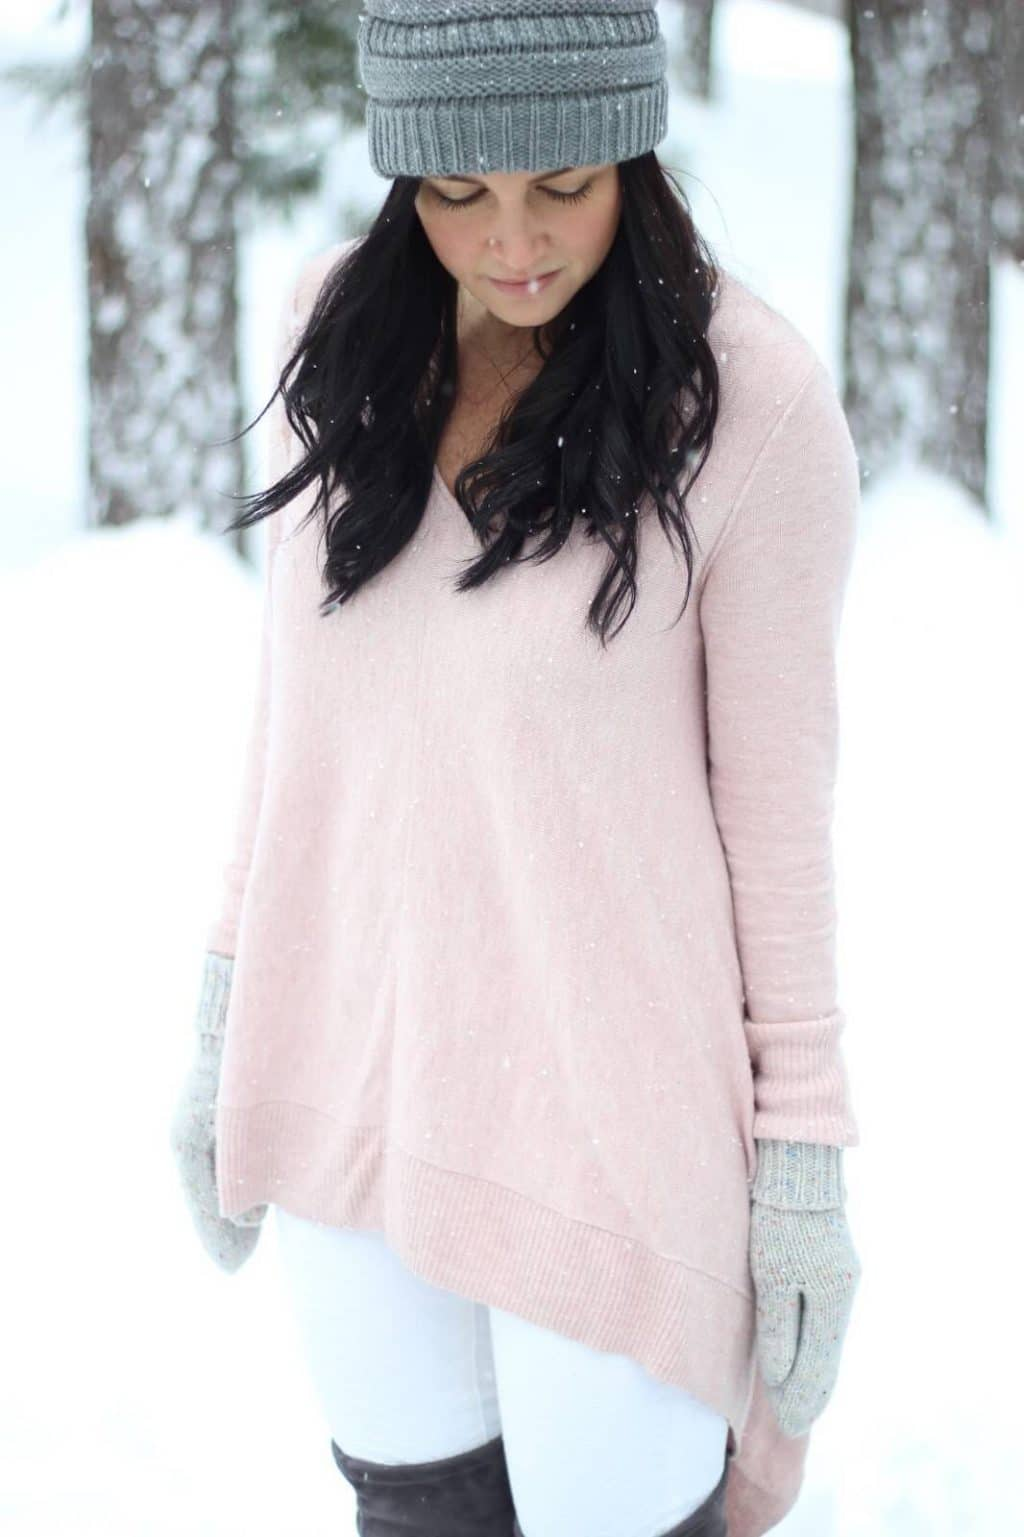 Pink and white pastels in the winter